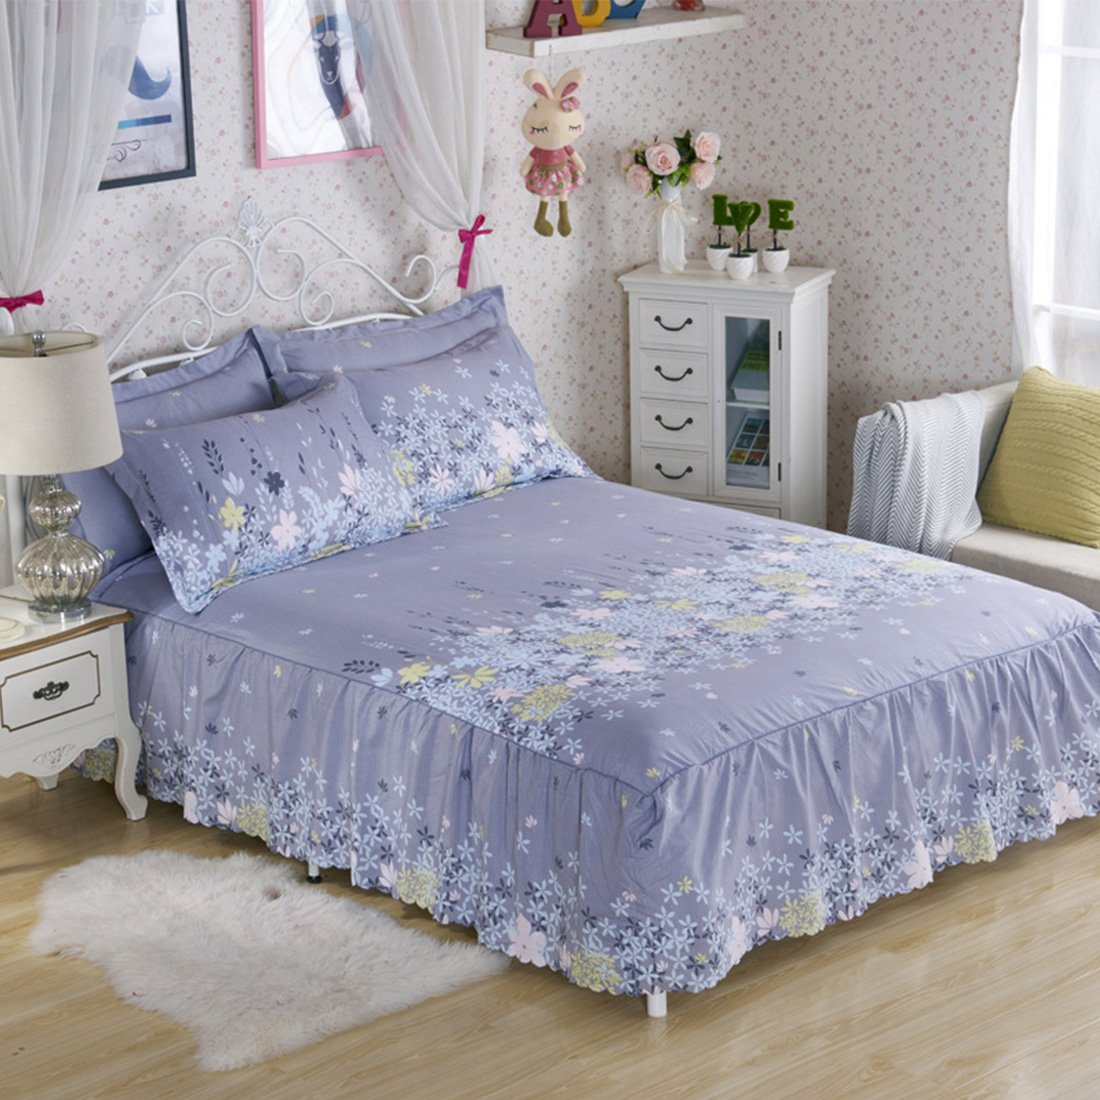 HBOS Ruffled Three Sides Wrap with Platform Pattern Bed Skirt TWo Pillowcases